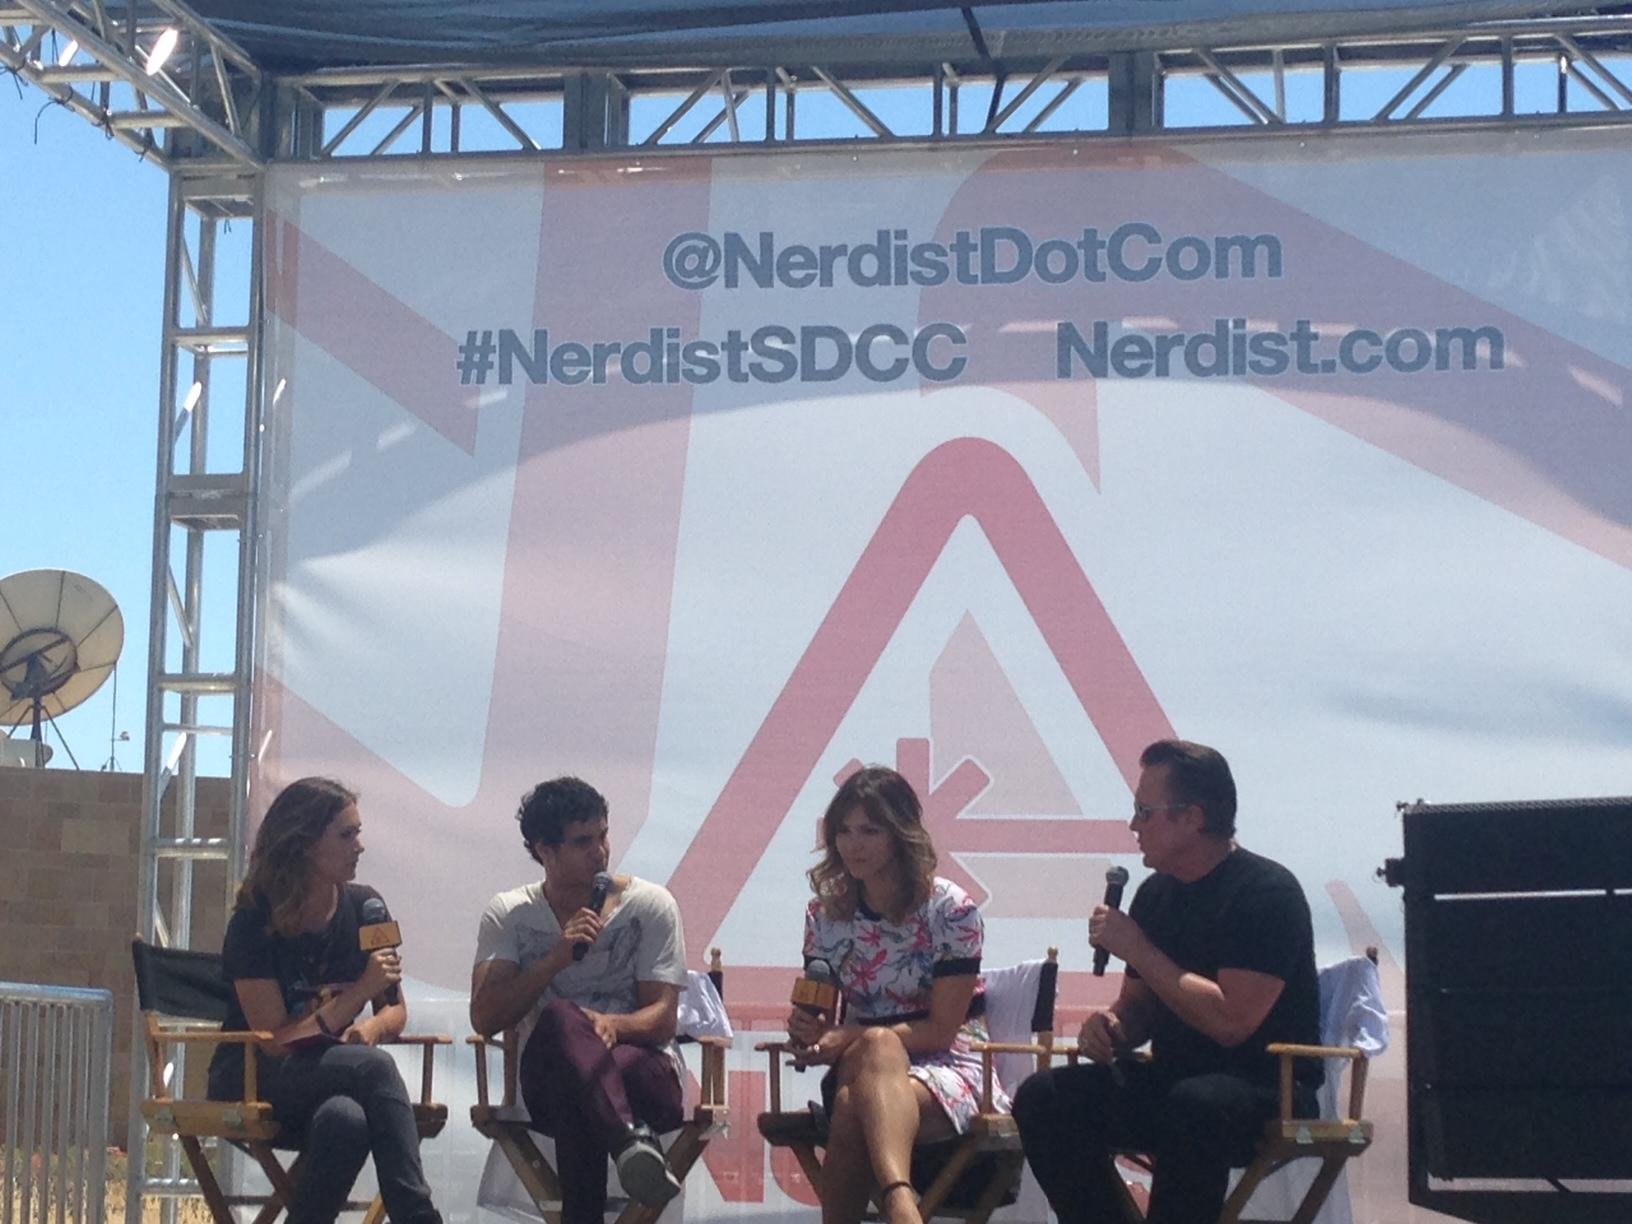 The cast of @Scorpion_CBS including @katharinemcphee & @robertpatrickT2 chat live with @NerdistDotCom at #SDCC2014 http://t.co/kif24YnlWc